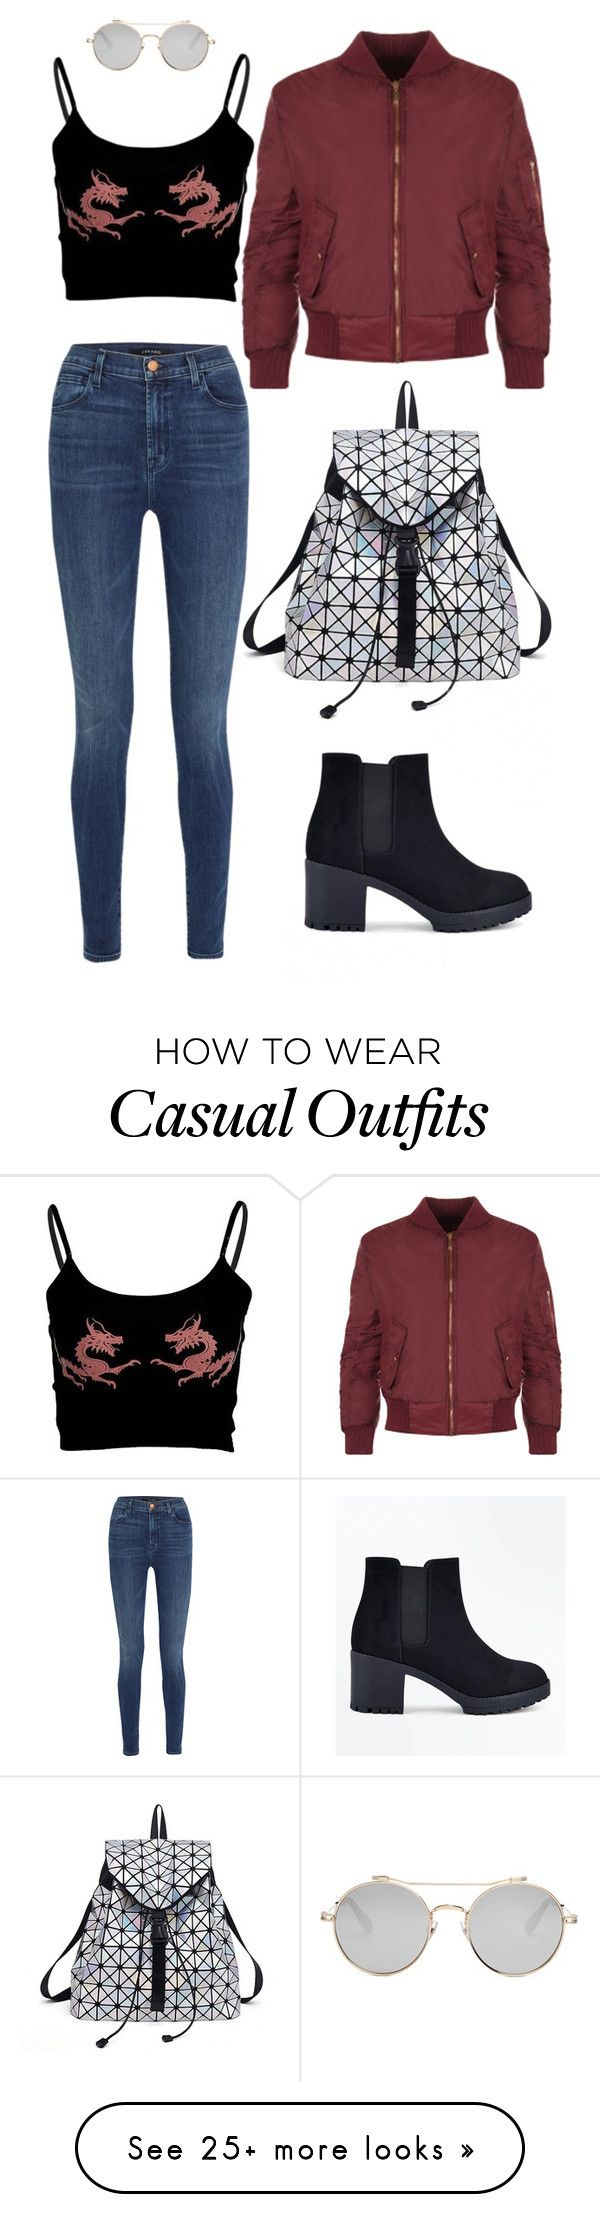 """Janina"" by jess-450 on Polyvore featuring J Brand, WearAll, New Look and Givenchy"